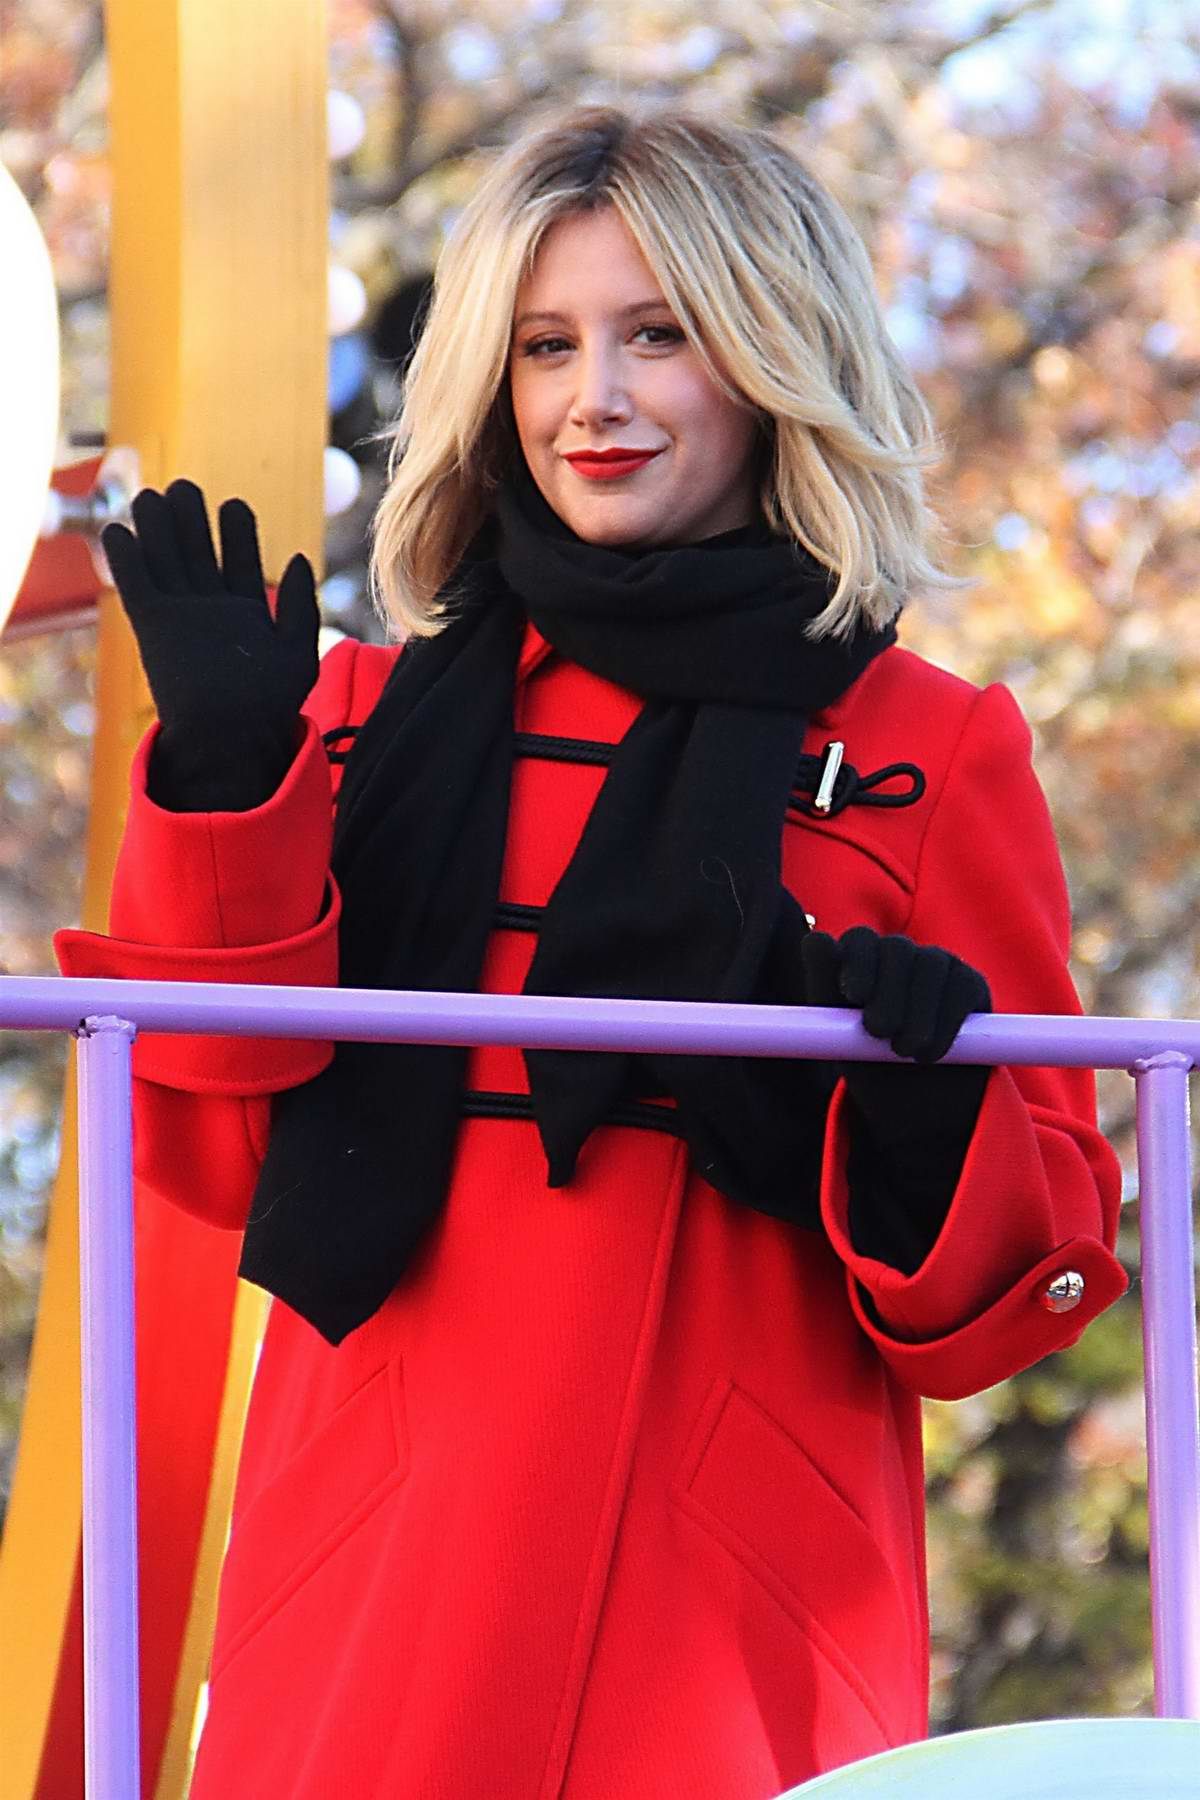 Ashley Tisdale attends the 92nd annual Macy's Thanksgiving Day Parade in New York City